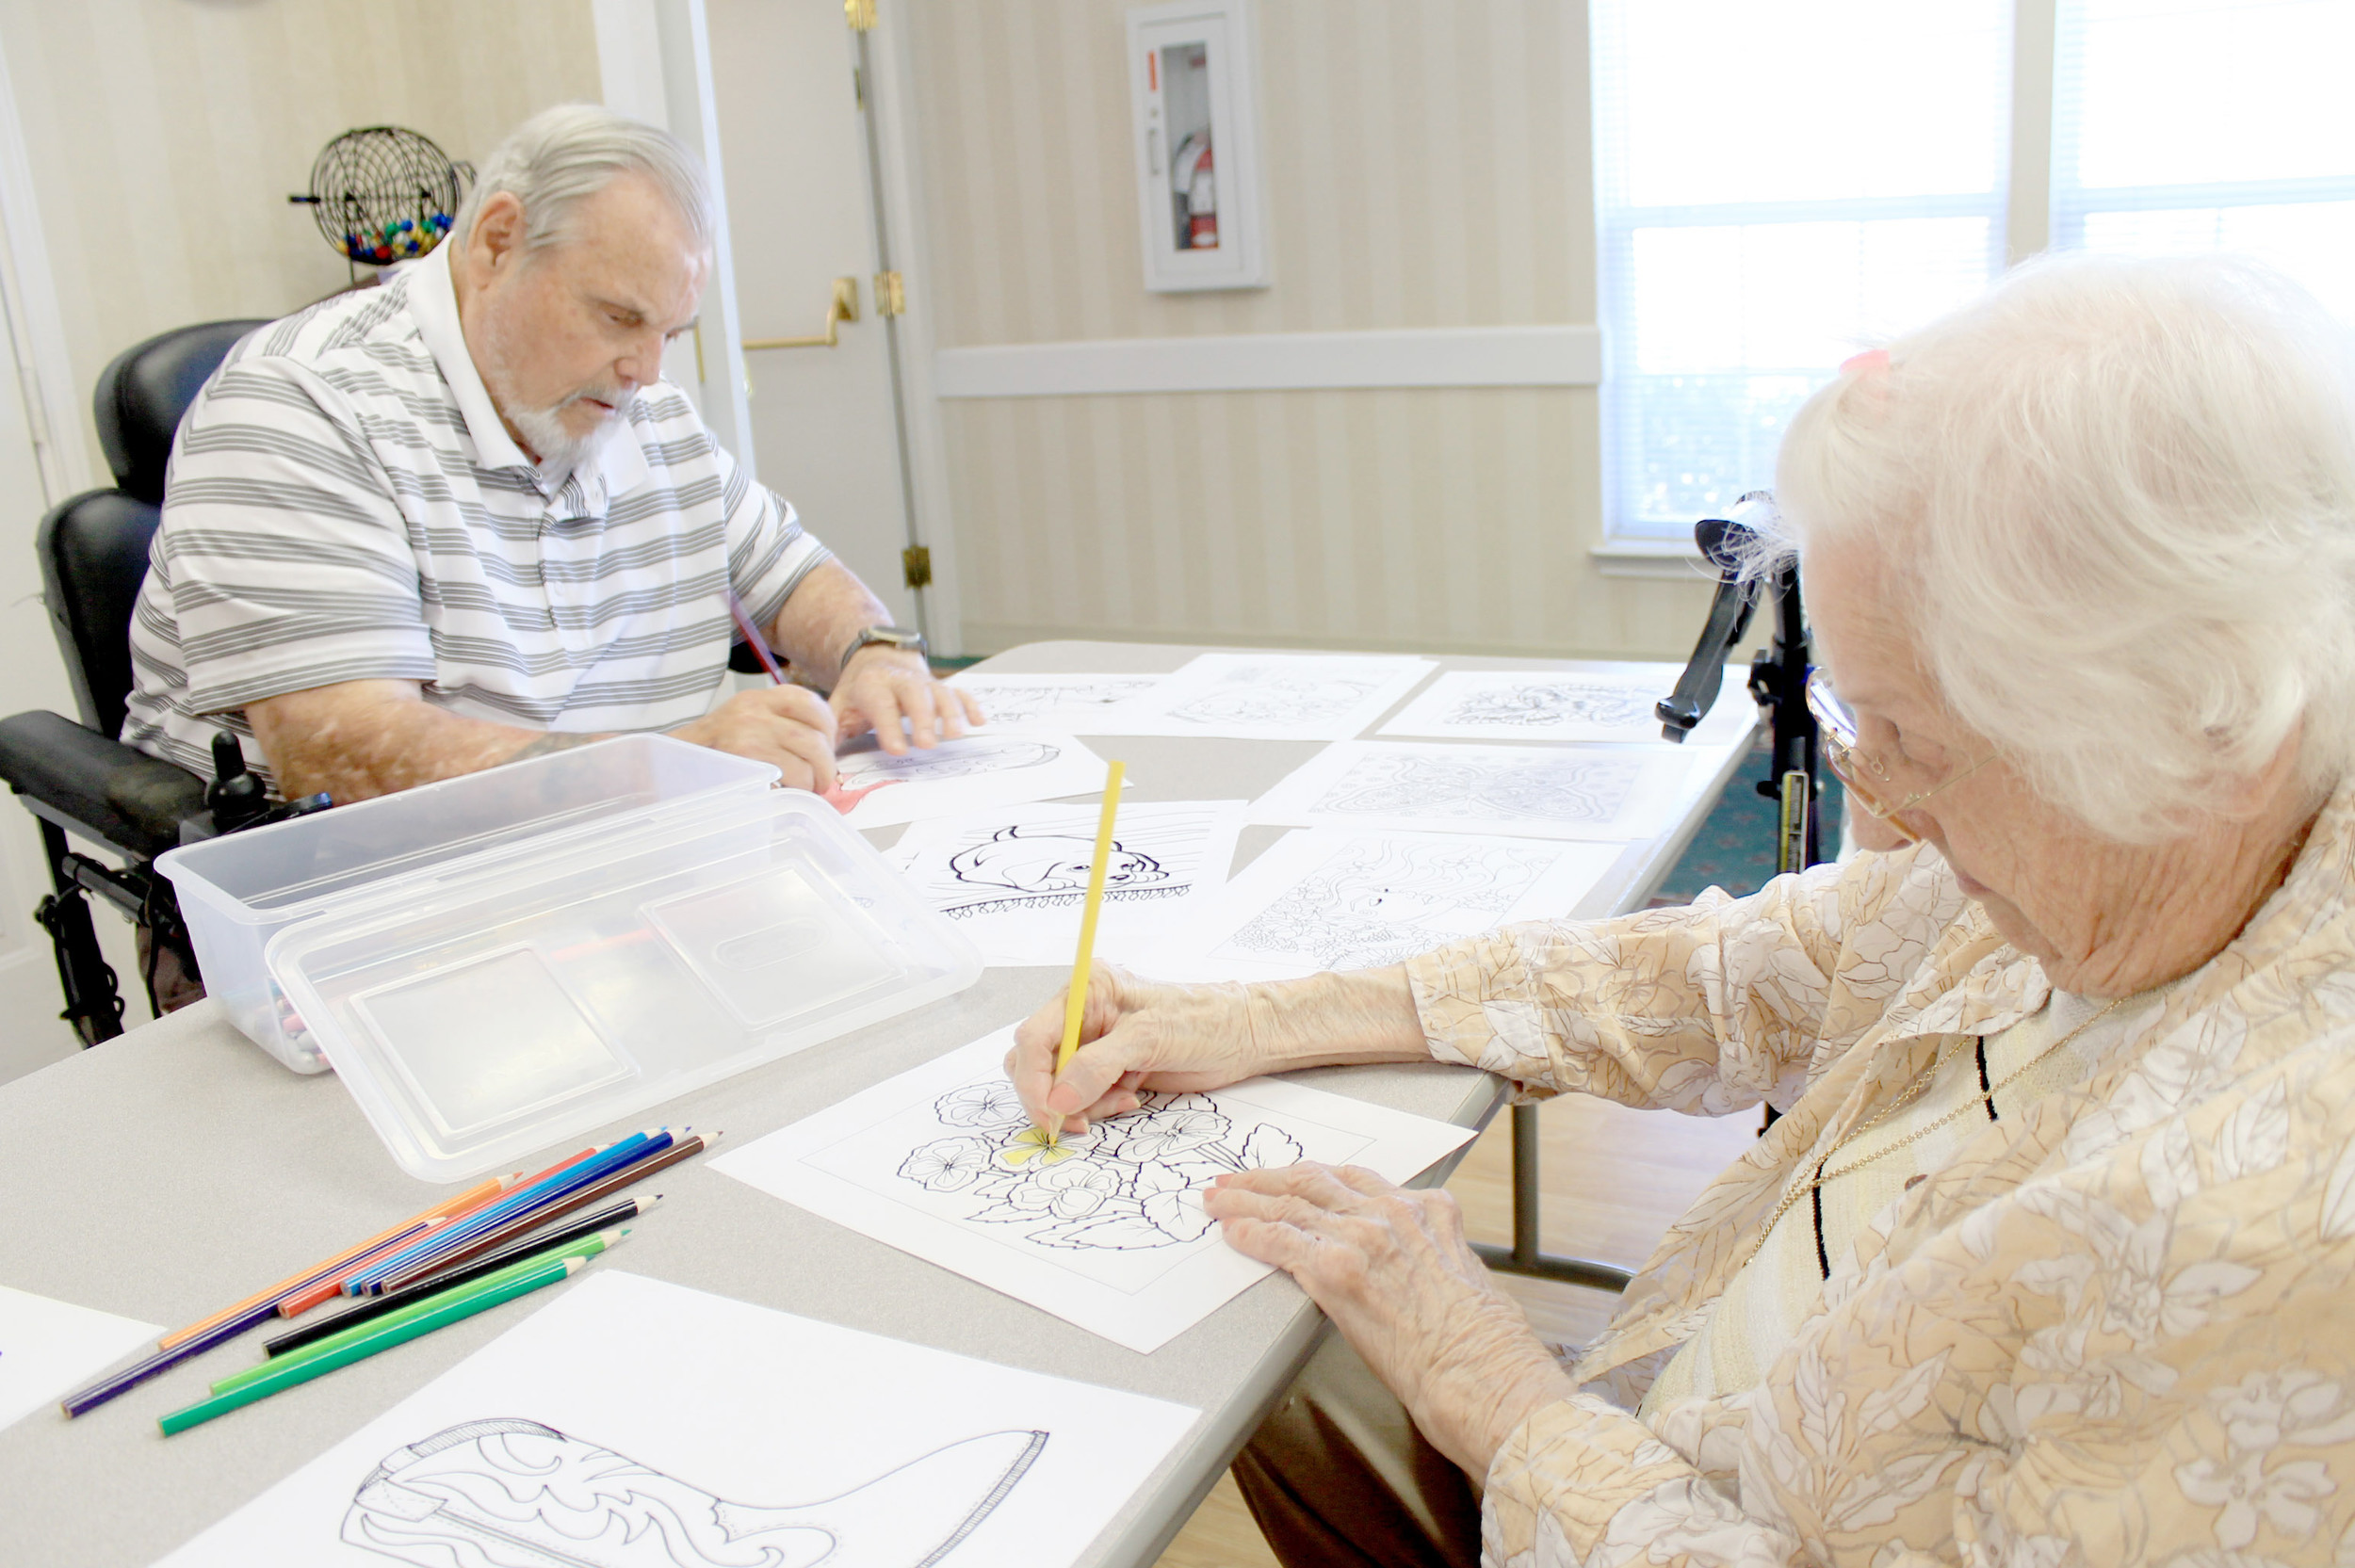 Magdalene Booth and Raymond Muncher work on adult coloring page in the activity room at HarborChase of Jasper Wednesday afternoon. The pastime has been popular with residents since Booth asked life enrichment coordinator Darlene Hubbard to make copies of her coloring book two months ago. Daily Mountain Eagle - Jennifer Cohron